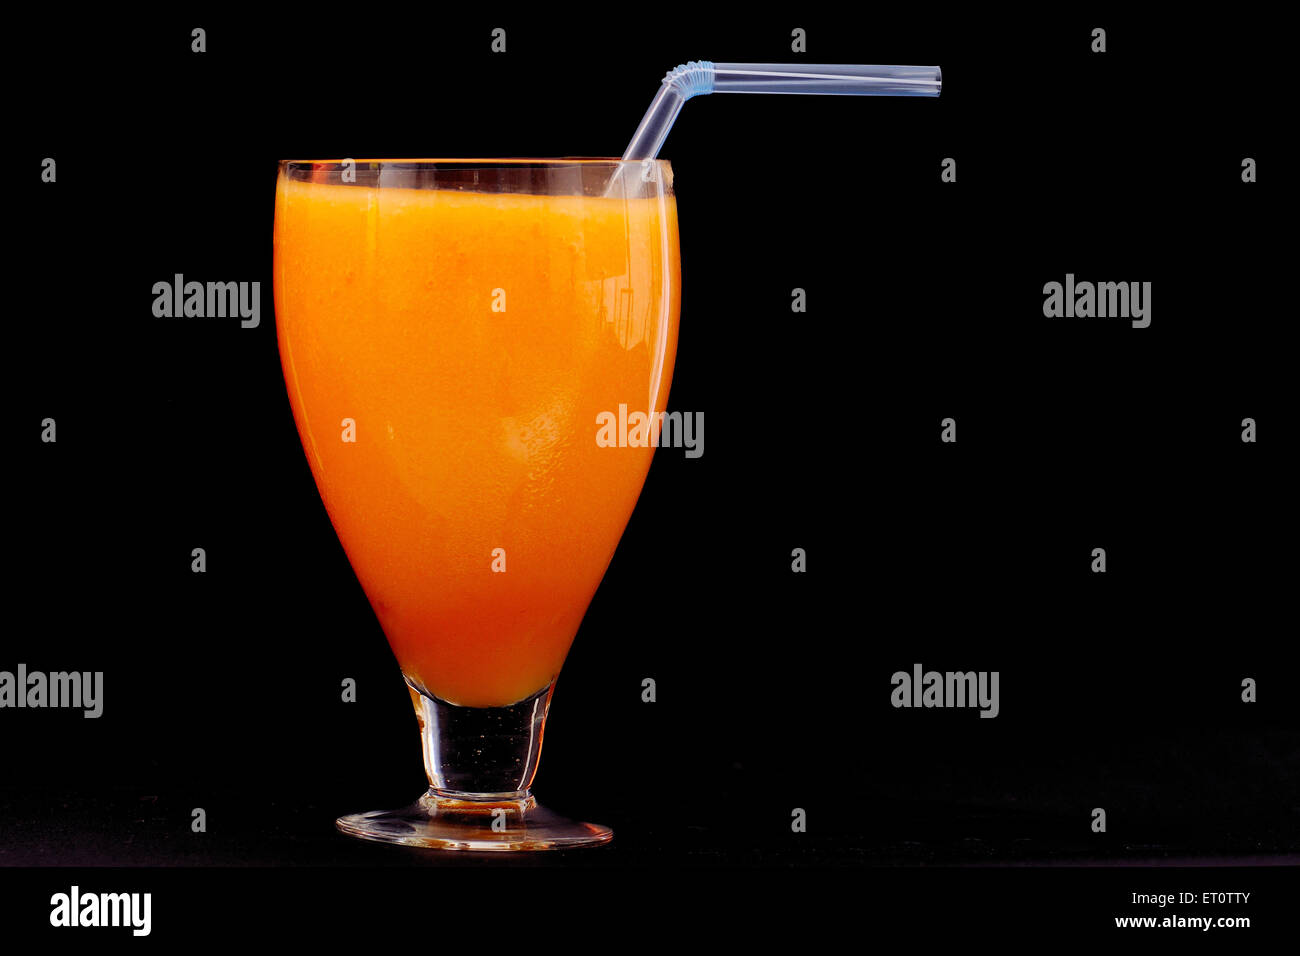 Orange juice in glass on black background - Stock Image